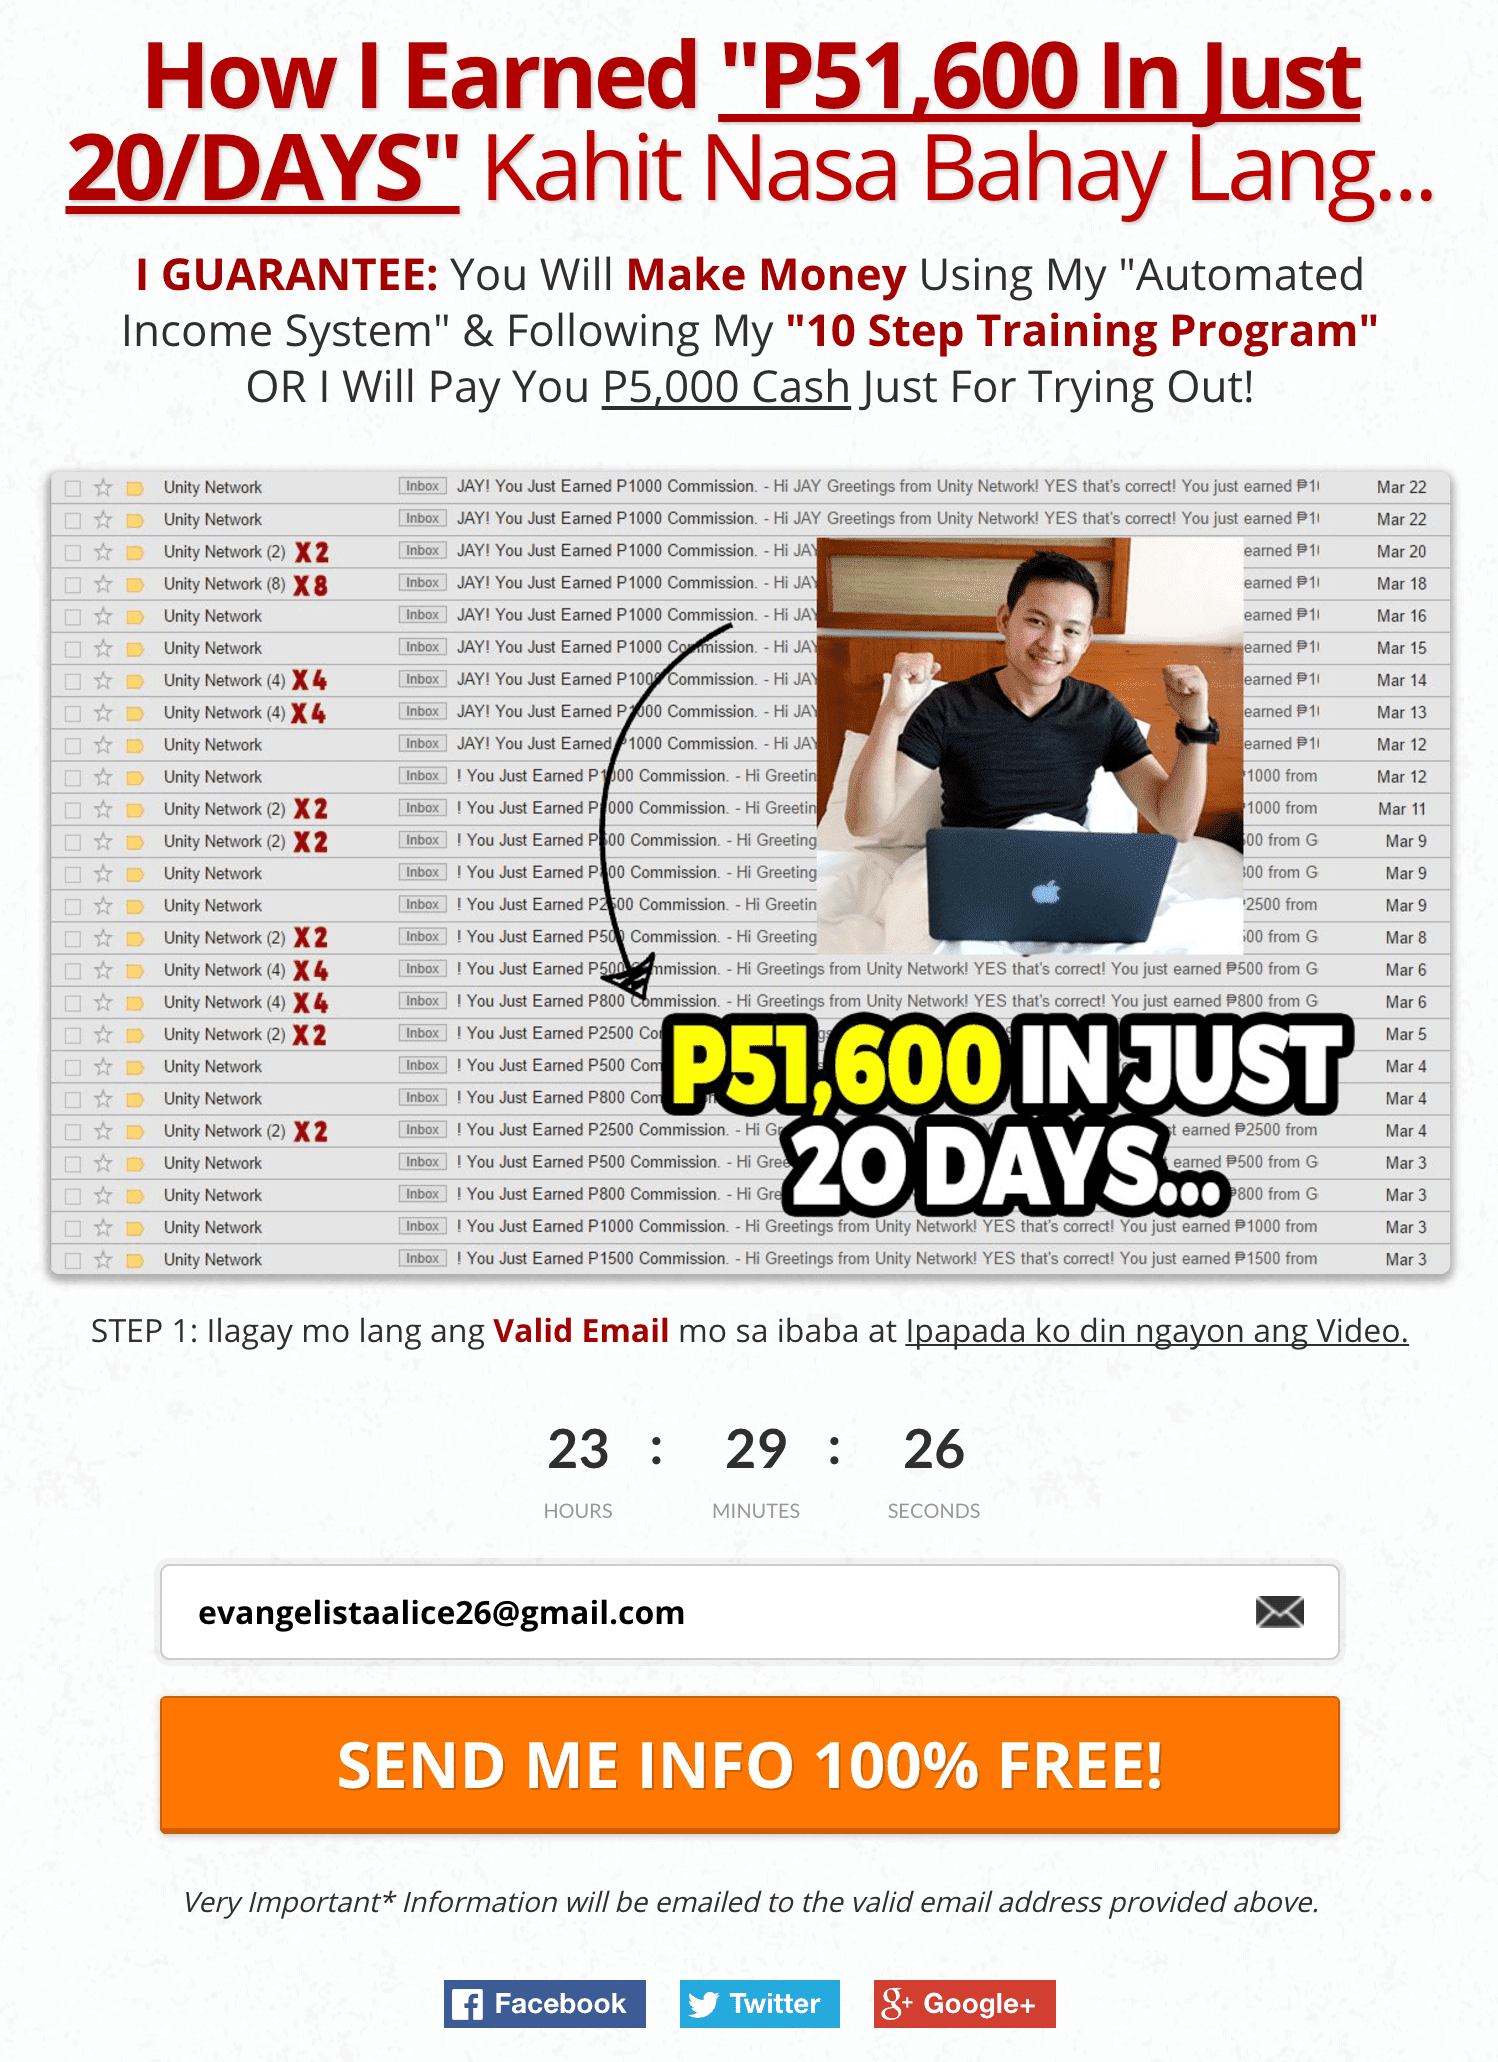 """How I Earned """"P51,600 In Just 20/DAYS"""""""